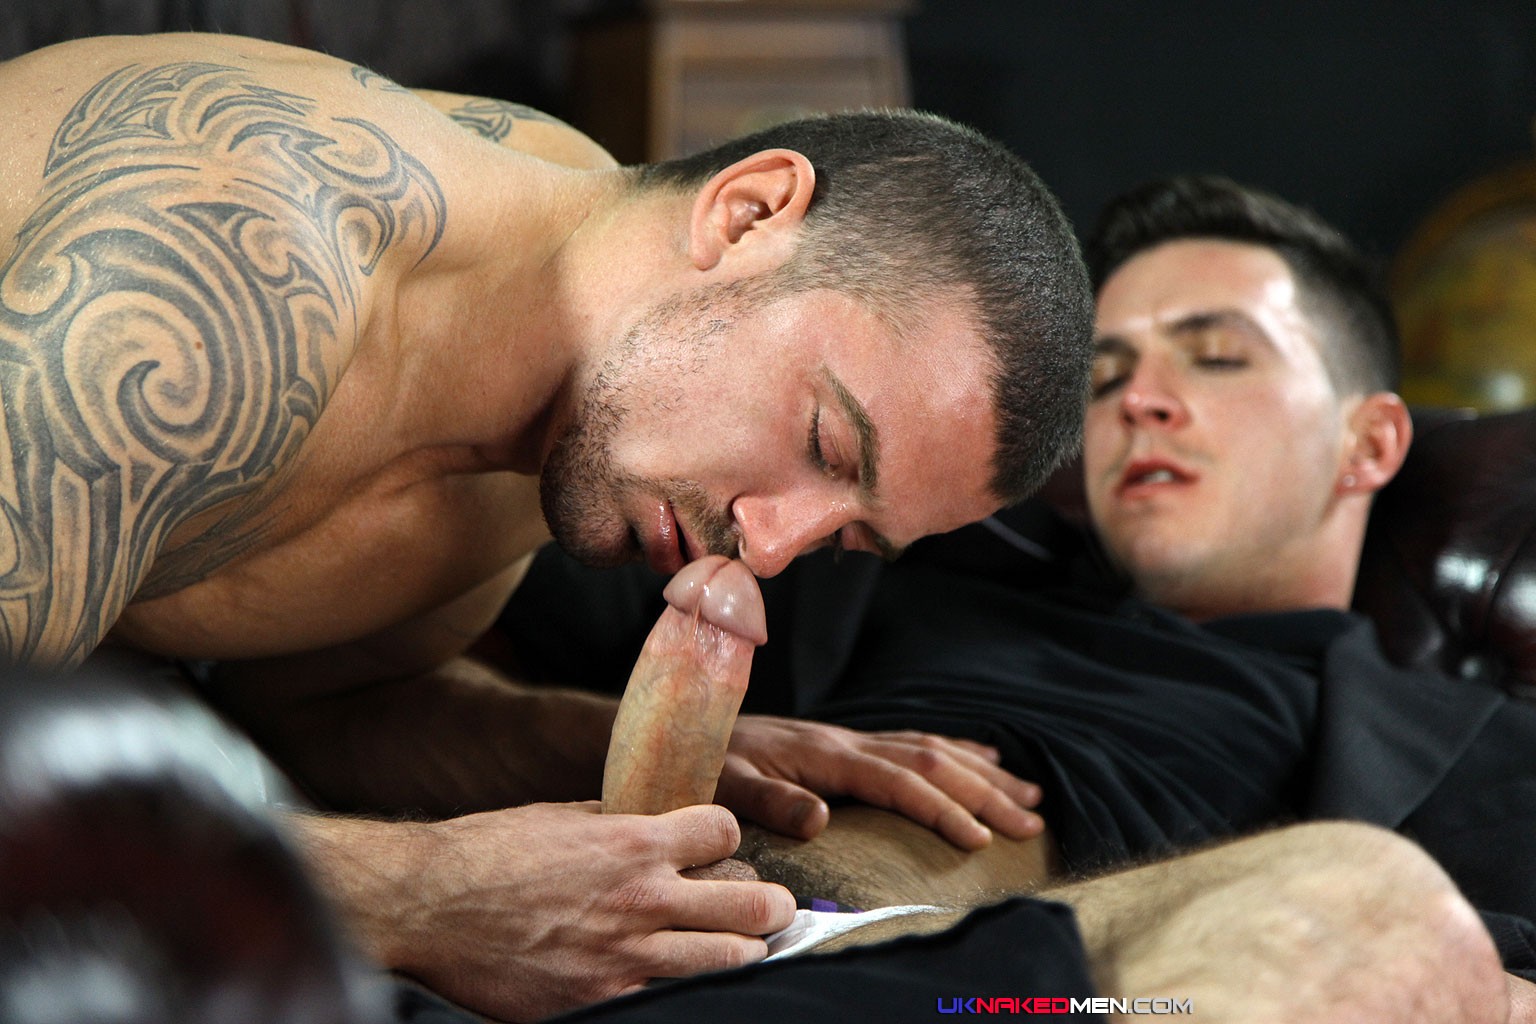 uknakedmen-paddy-obrian-marco-sessions-straight-fucking-thick-cock-05 Amateur Straight Guy From the UK Fucks His First Man Ass